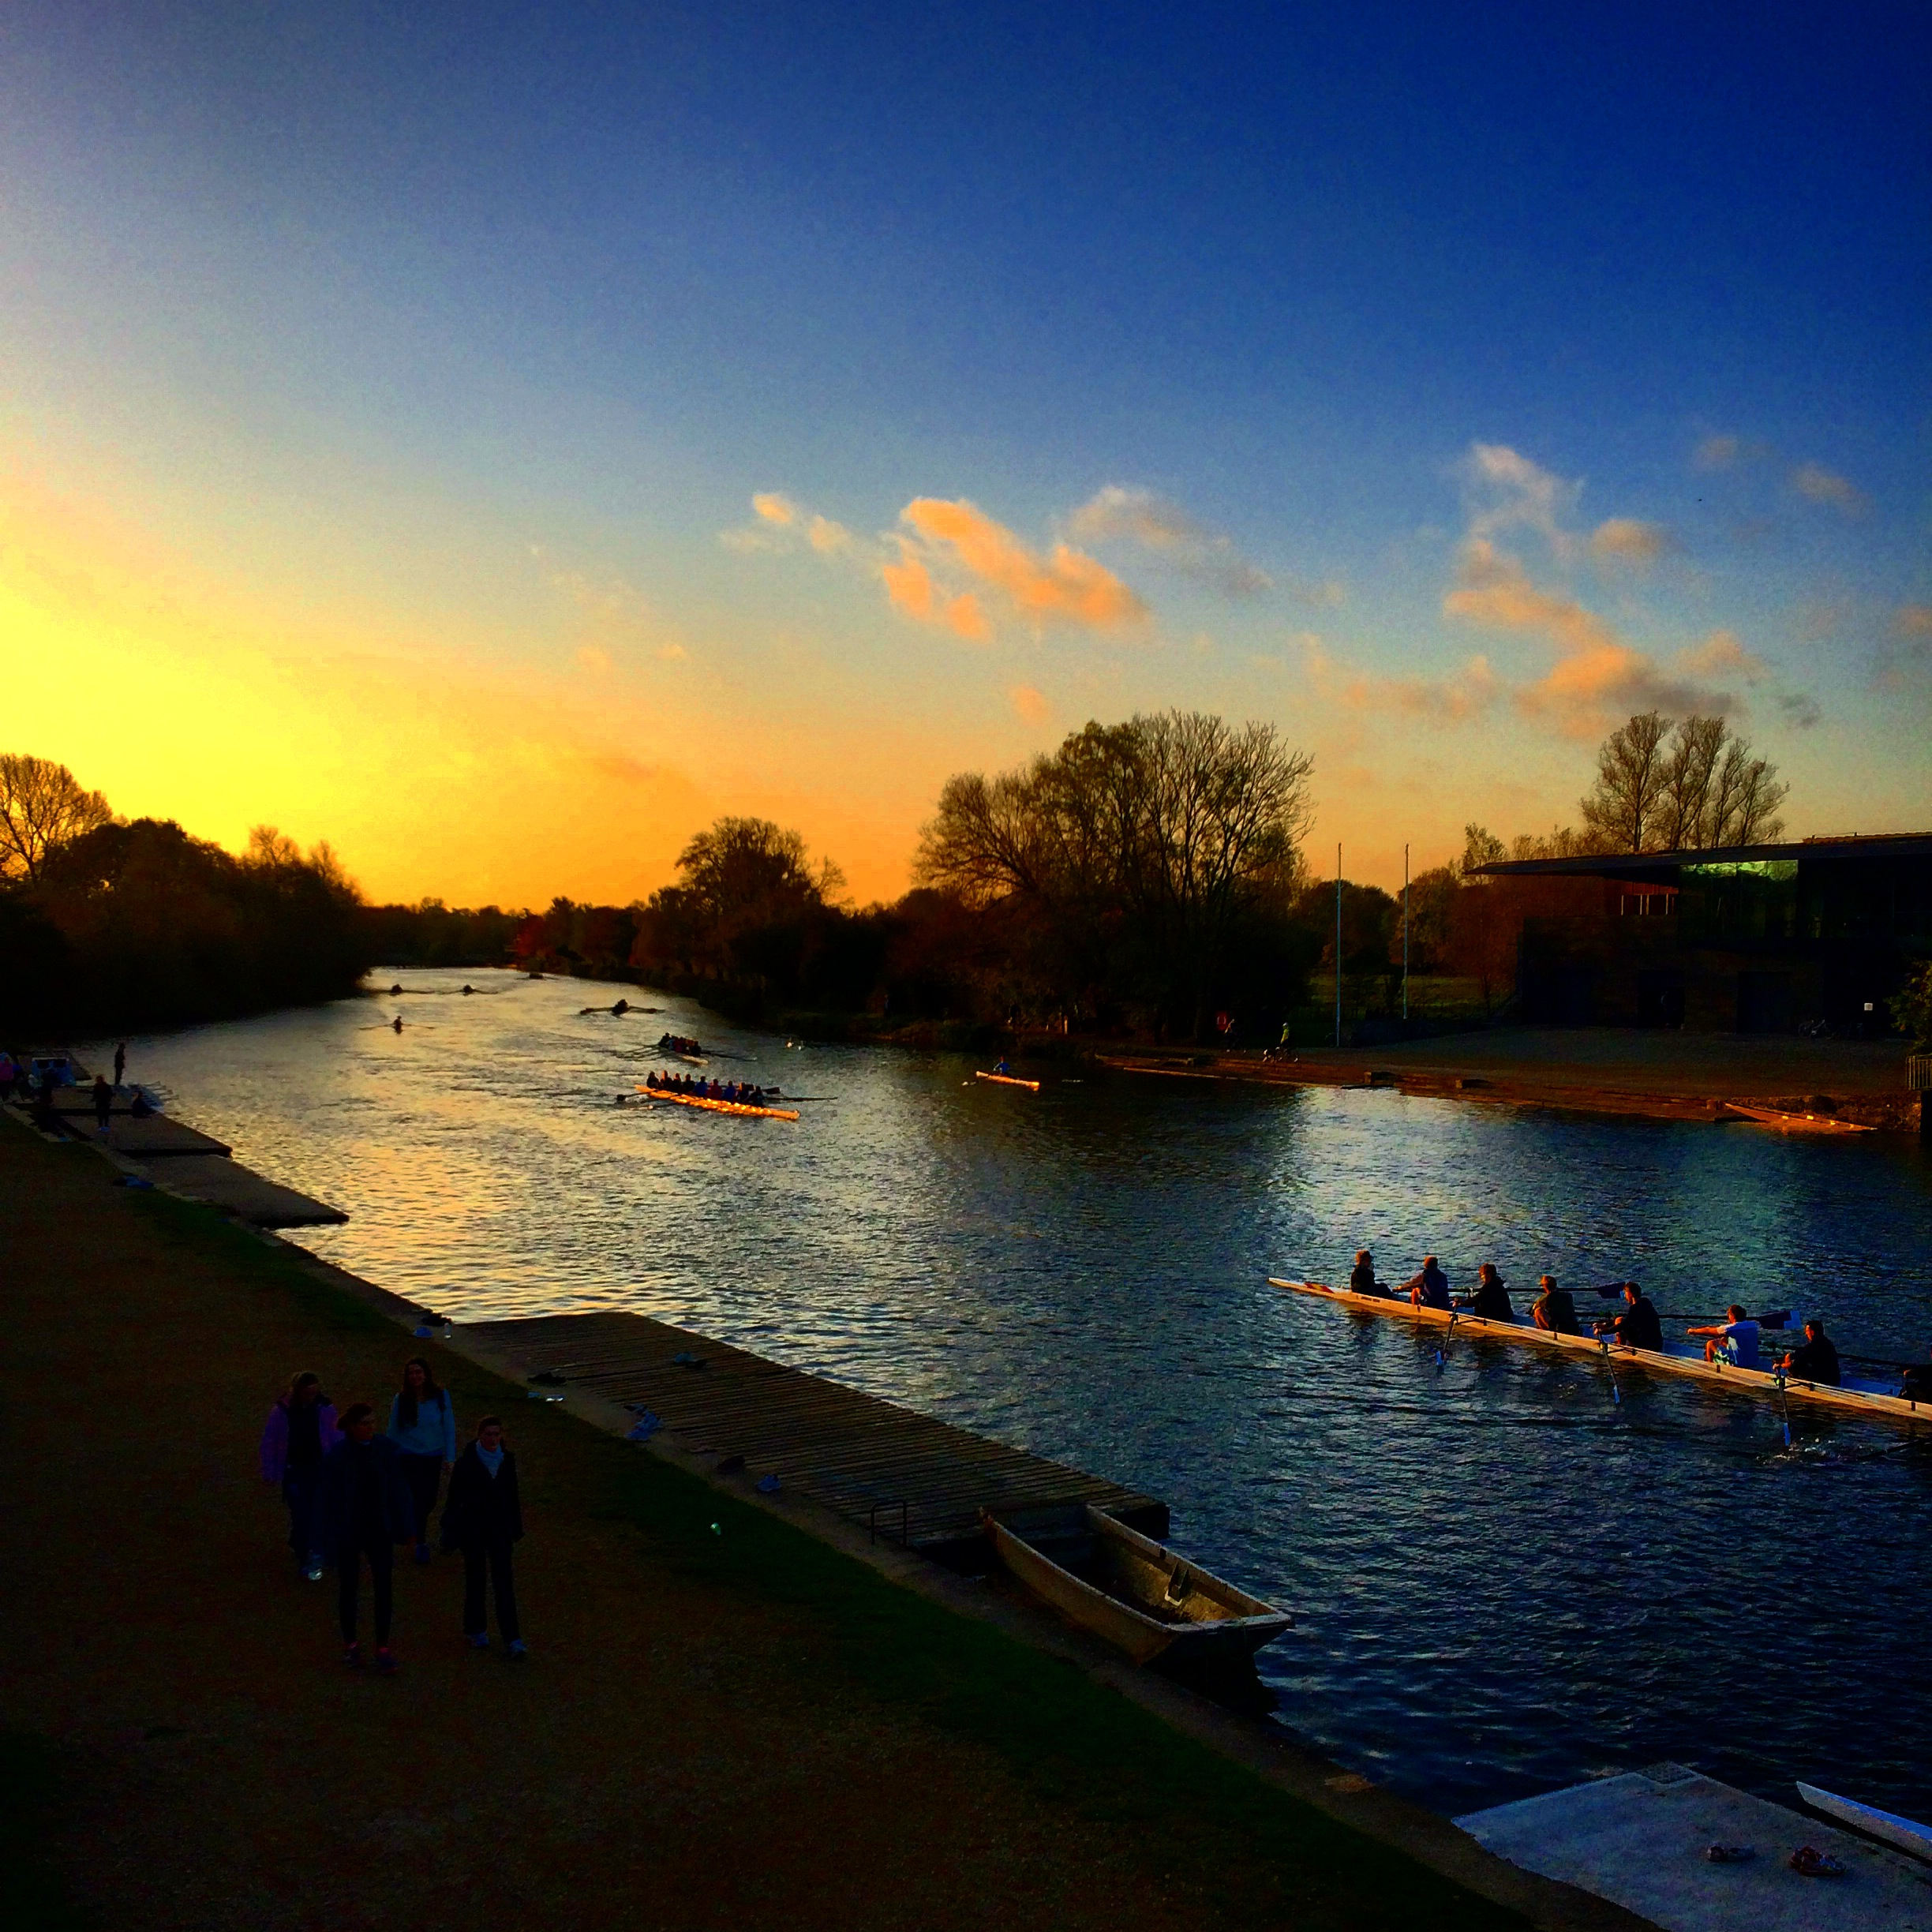 #Sunrise and #Sunset over the Isis in #oxford